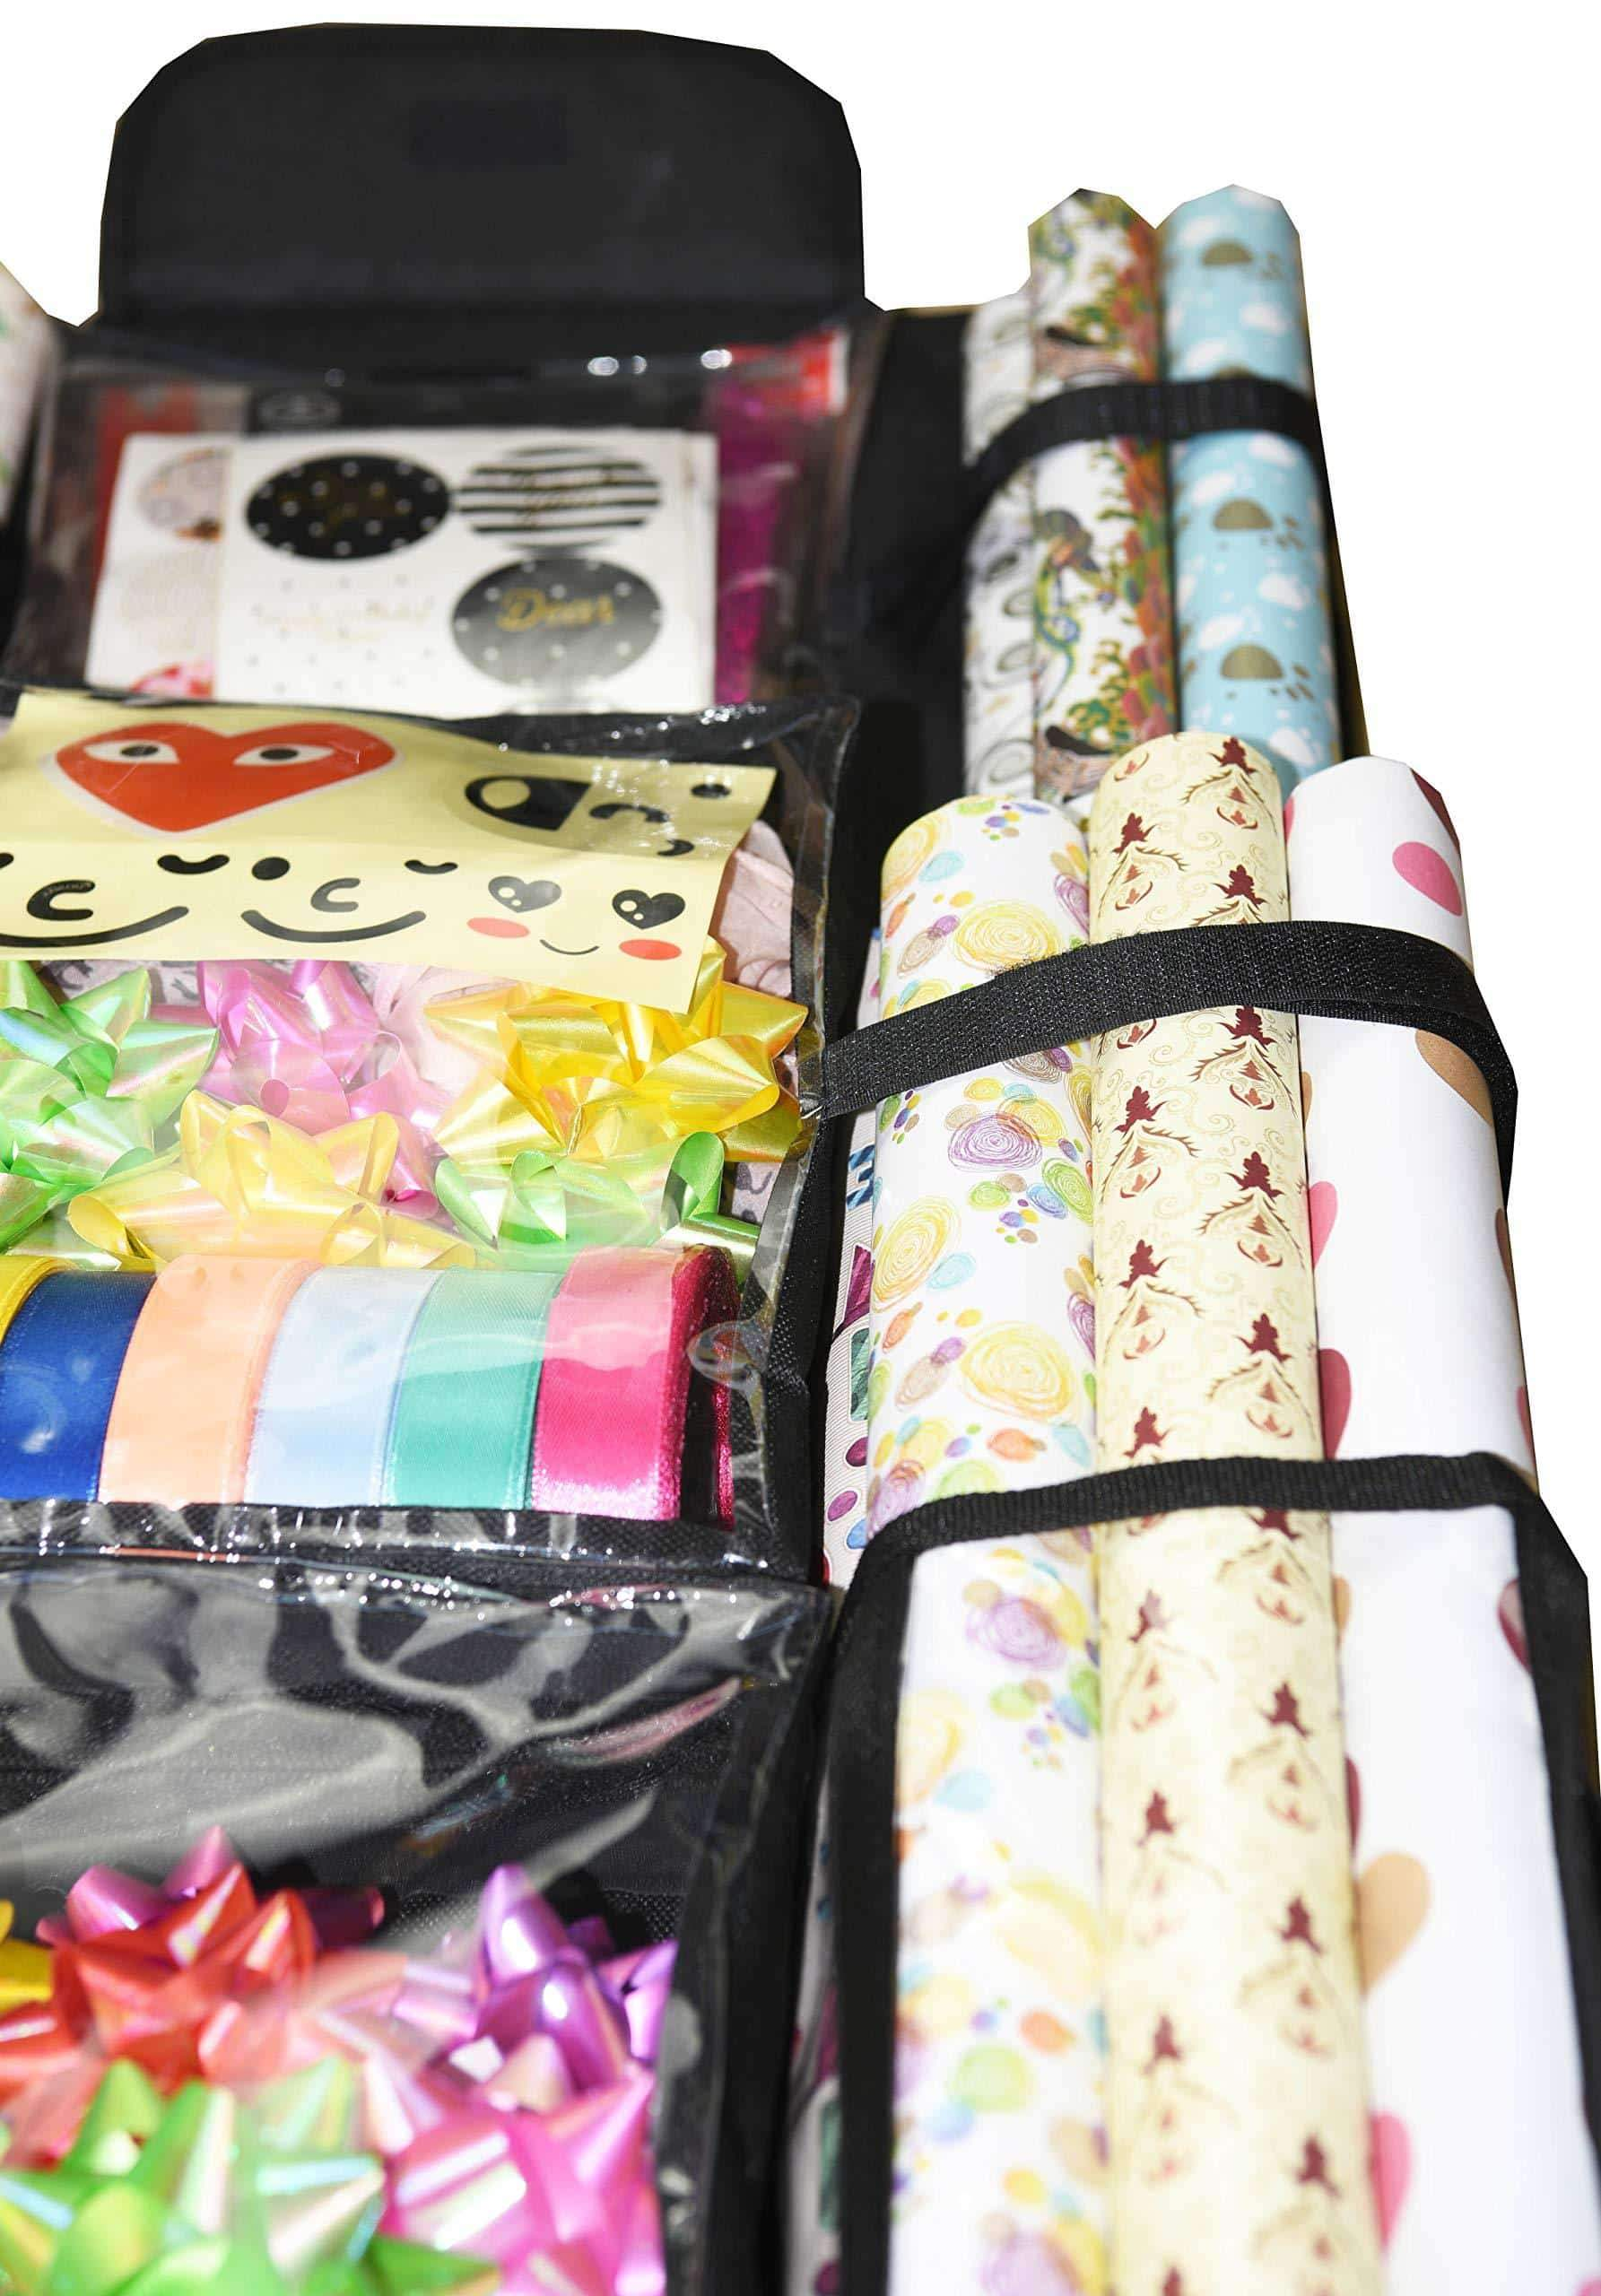 Latest freegrace double sided hanging gift wrap organizer large 16 x 41 wrapping paper rolls storage bag tearproof space saving closet gift bag organization solution black